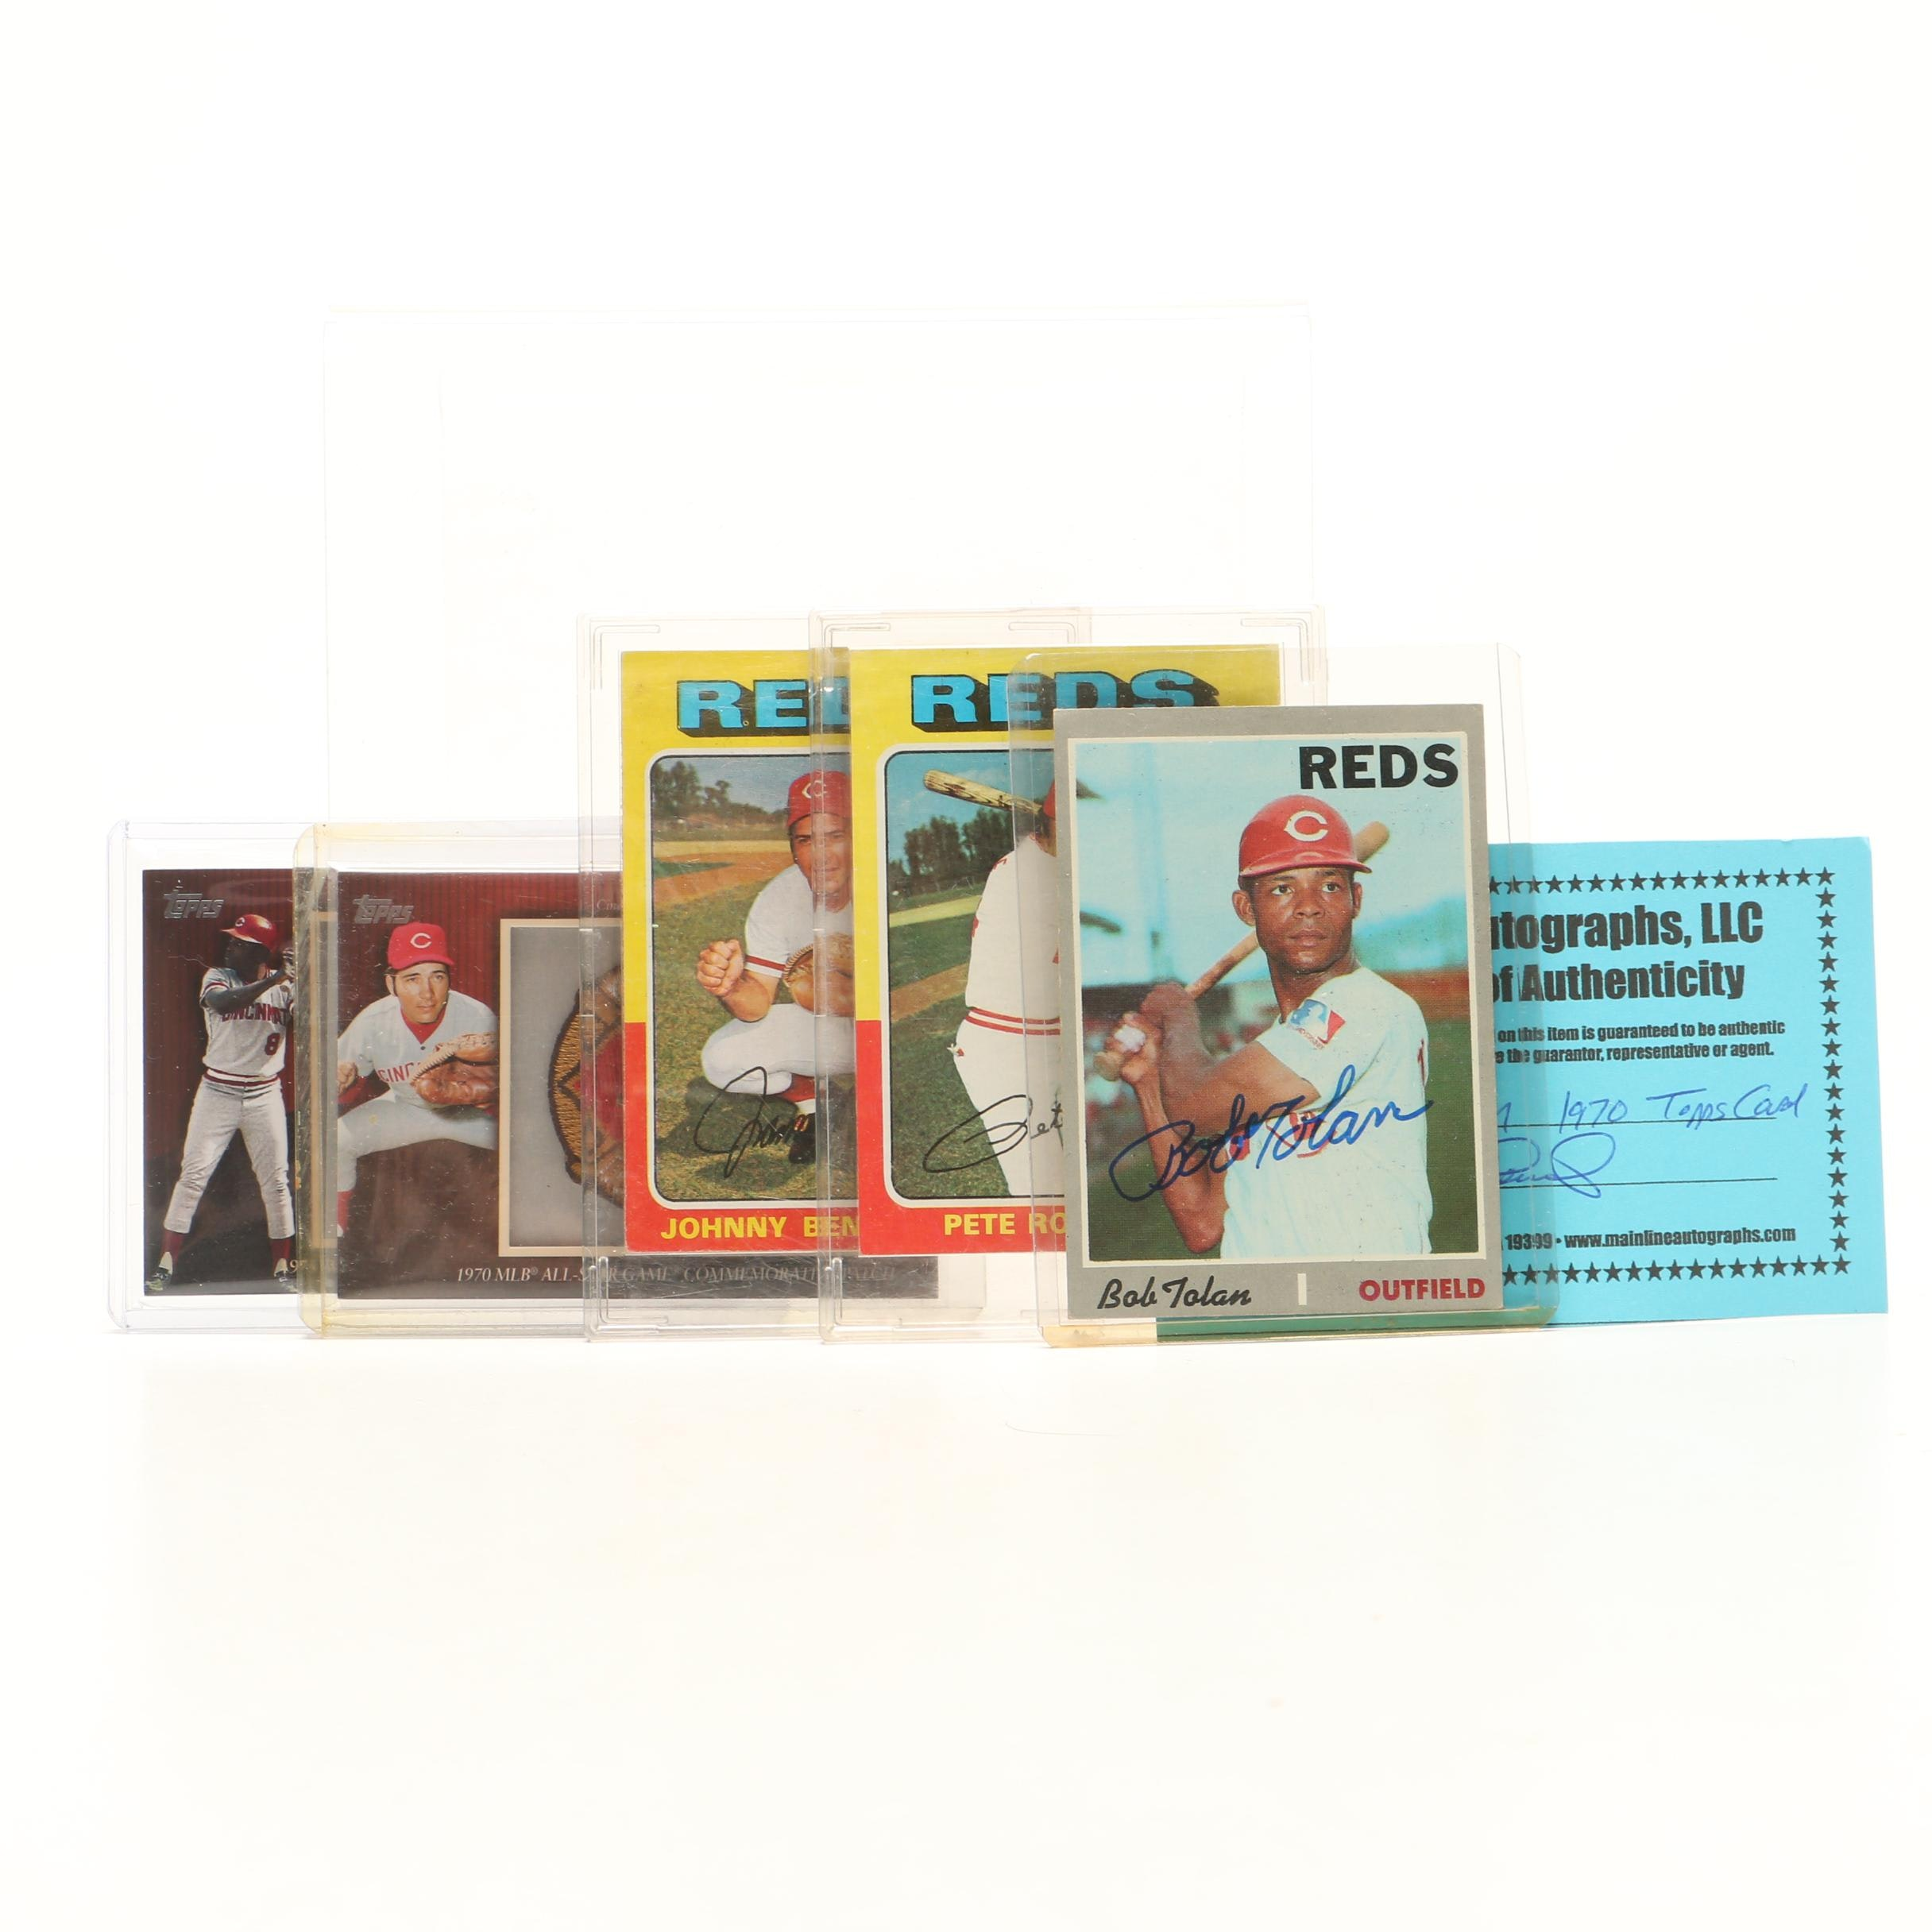 Cincinnati Reds Cards Including 1975 Topps, Relics, and Bobby Tolan Autographed